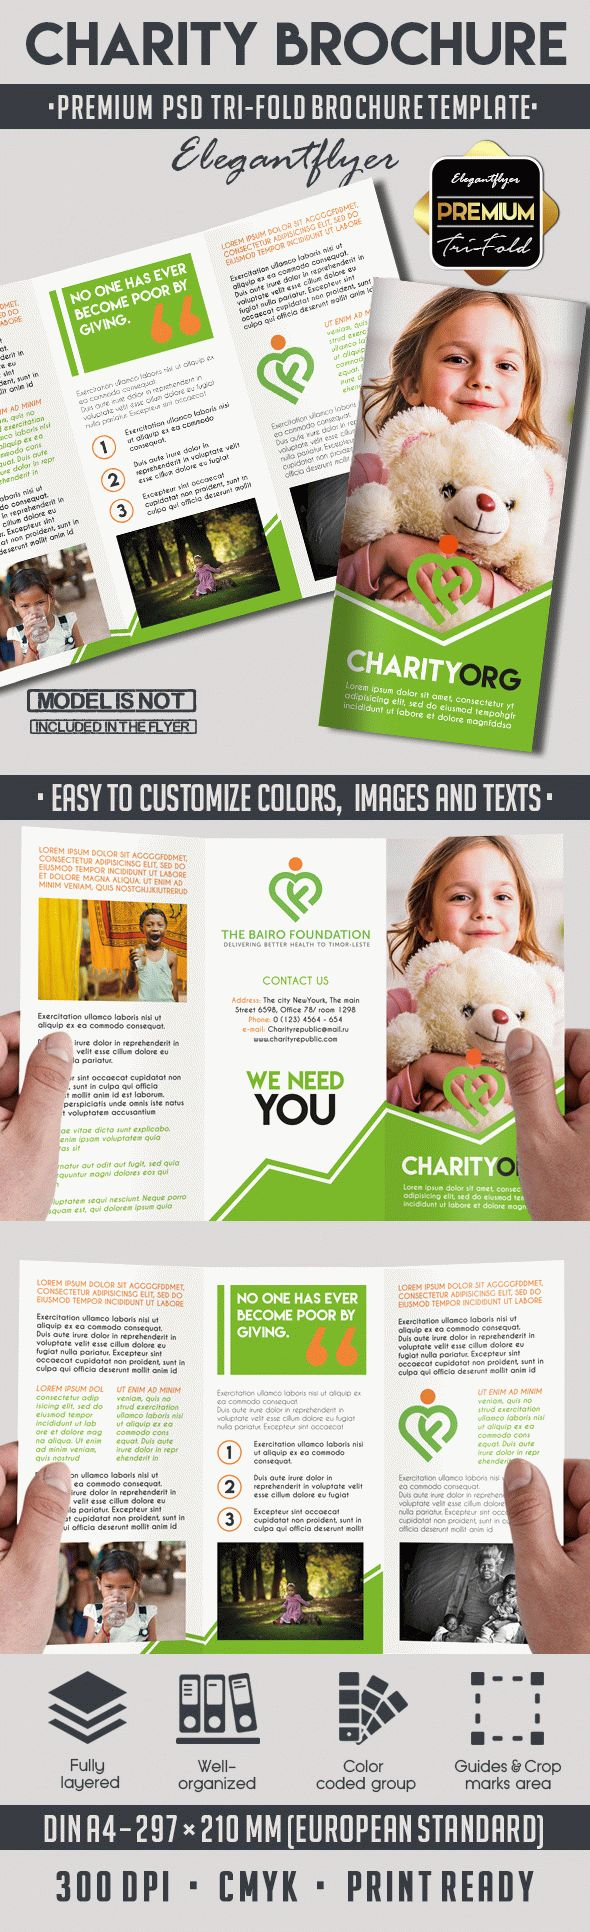 premium brochure templates - charity tri fold brochure template by elegantflyer